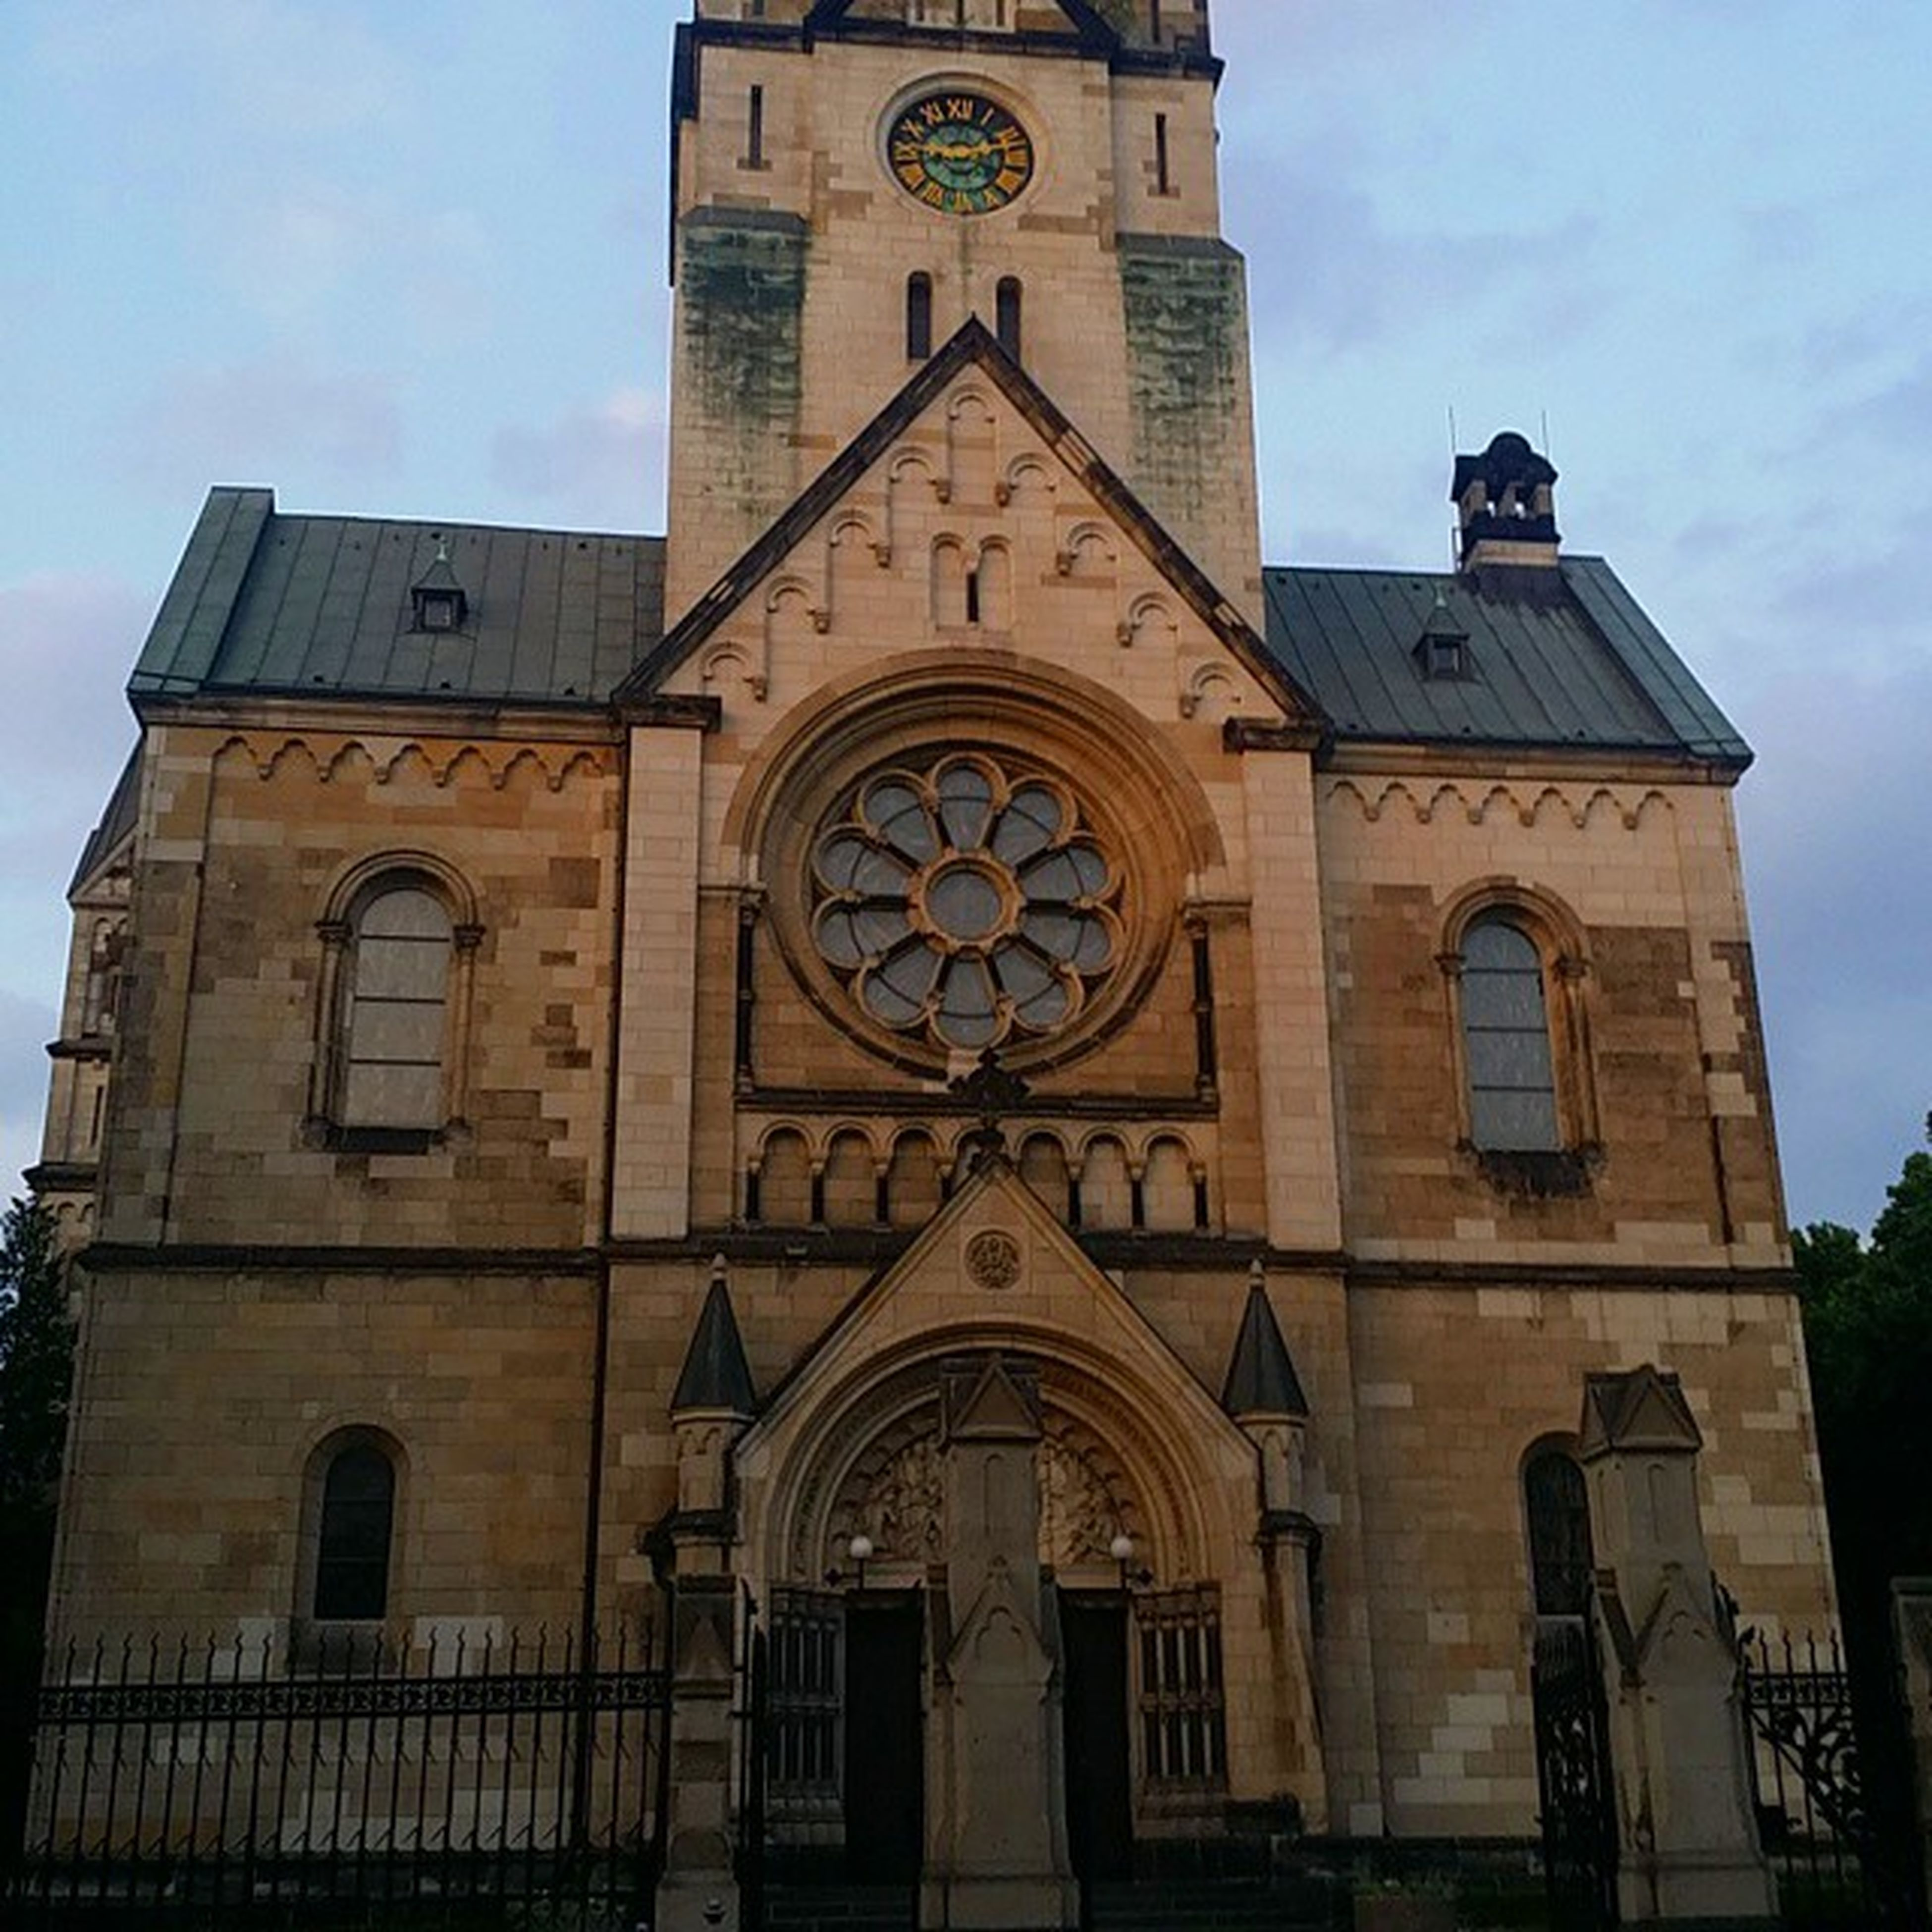 architecture, low angle view, building exterior, built structure, religion, clock, sky, church, clock tower, time, cross, place of worship, window, facade, spirituality, tower, day, no people